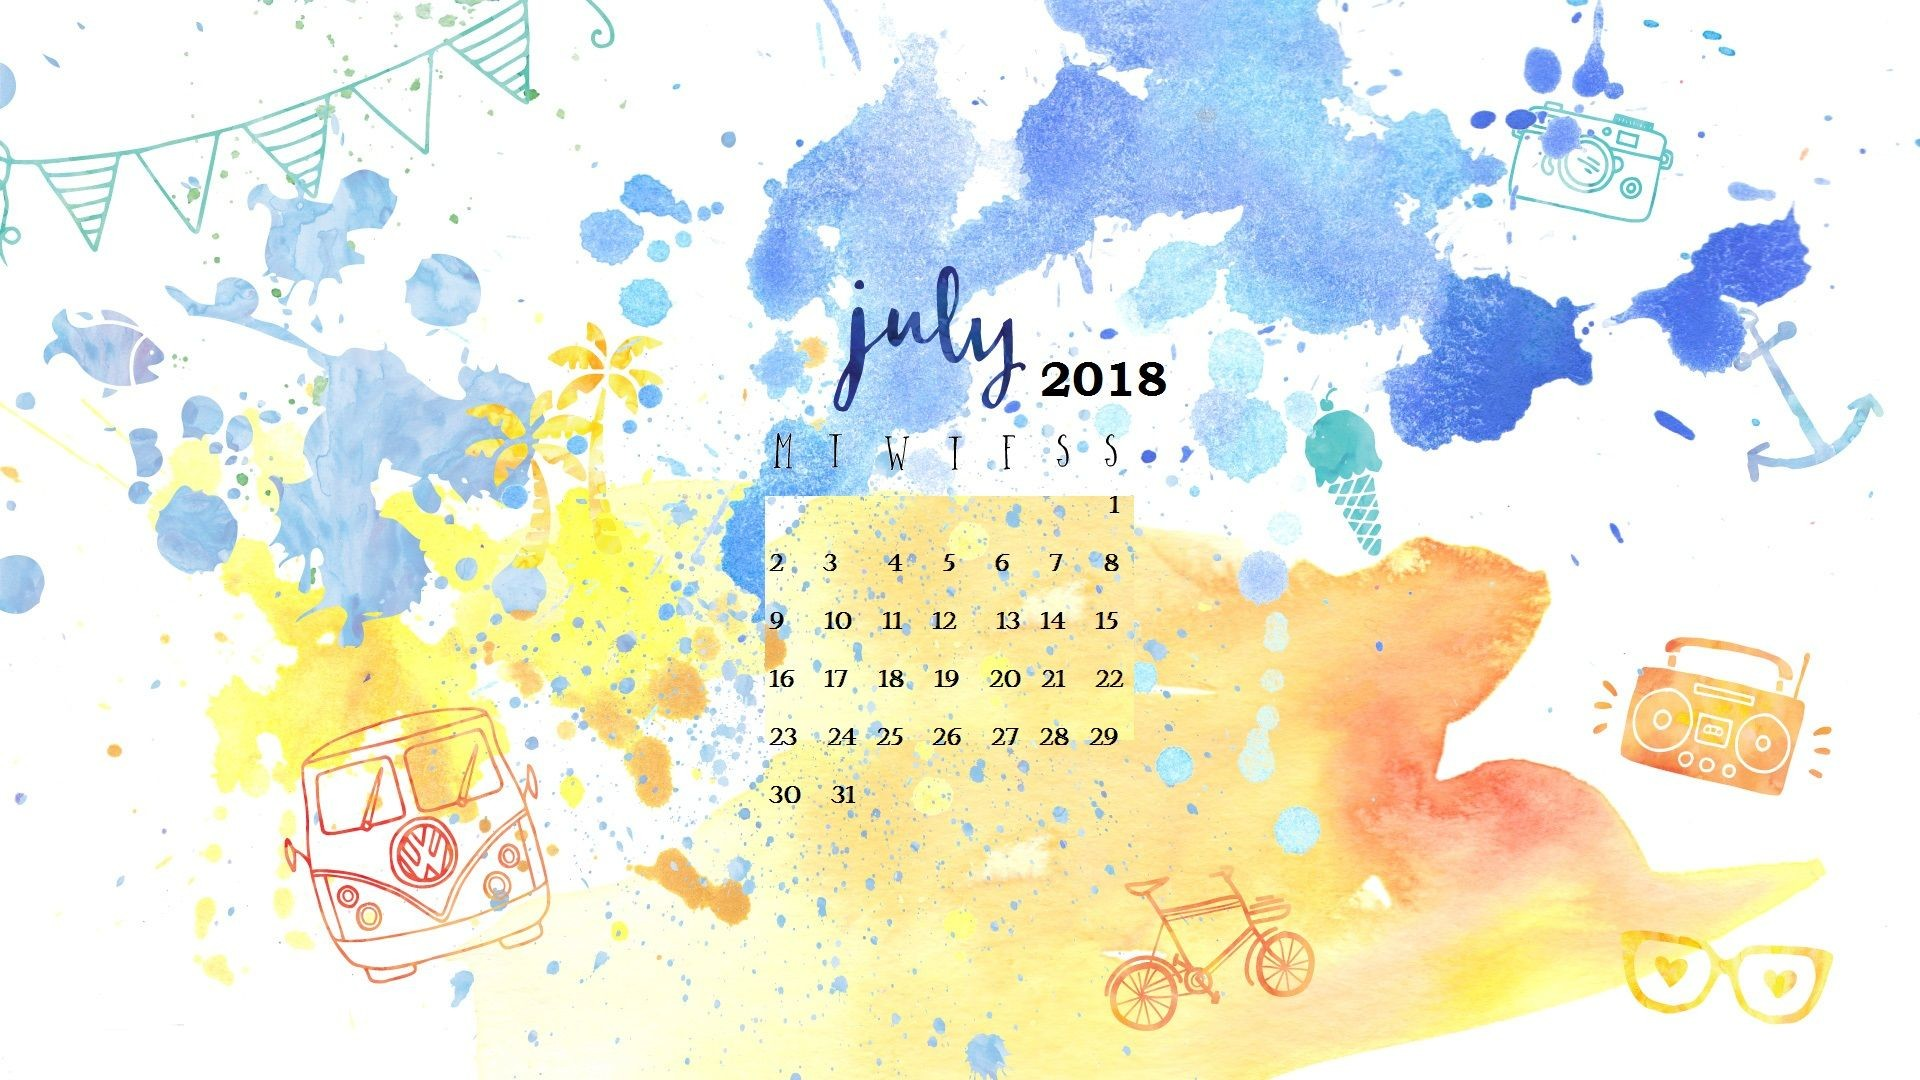 1920x1080 Watercolor July 2018 Calendar Wallpapers Designs Layouts Free Download For  PC Laptop Smart Gadgets